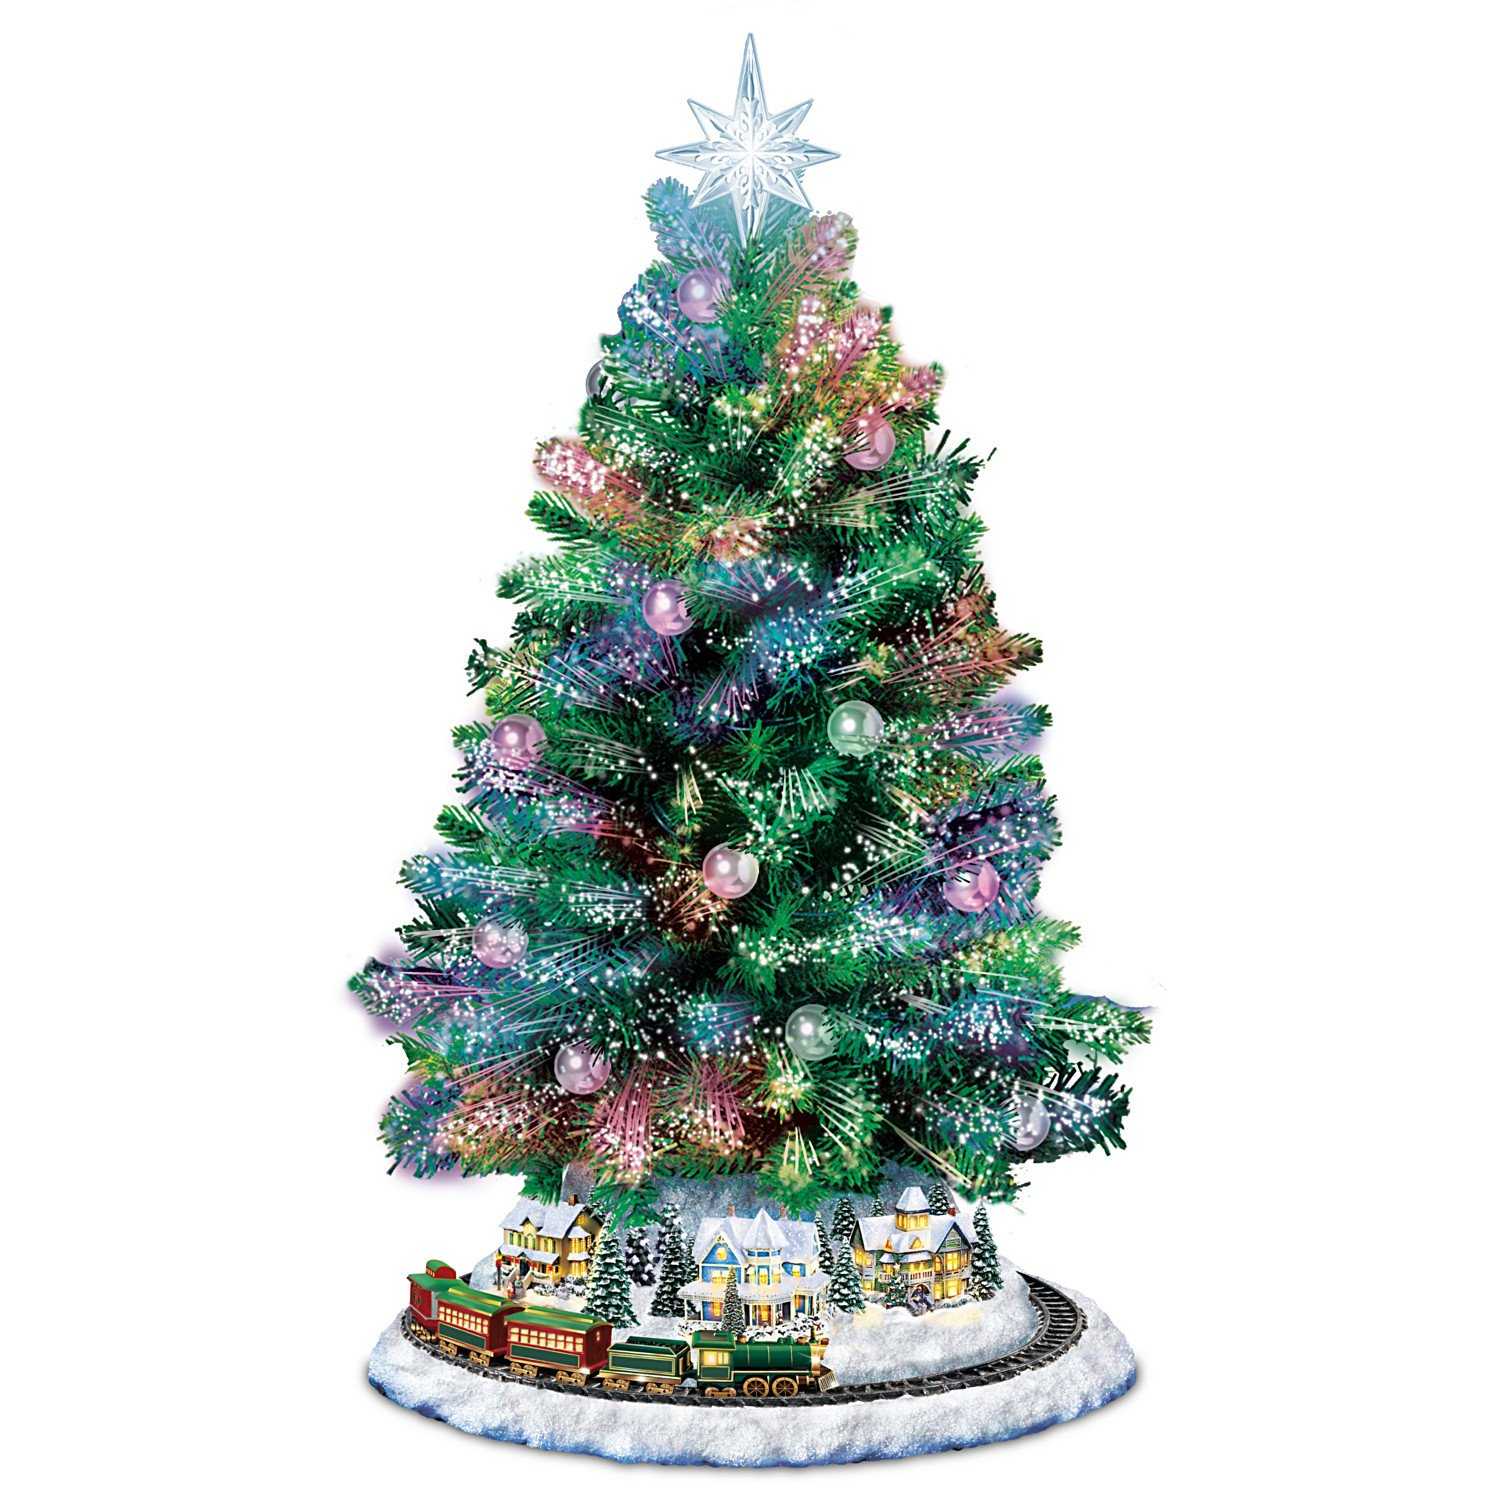 Thomas Kinkade Holiday Sparkle Color-Changing Fiber-Optic Tabletop Christmas Tree by The Bradford Exchange